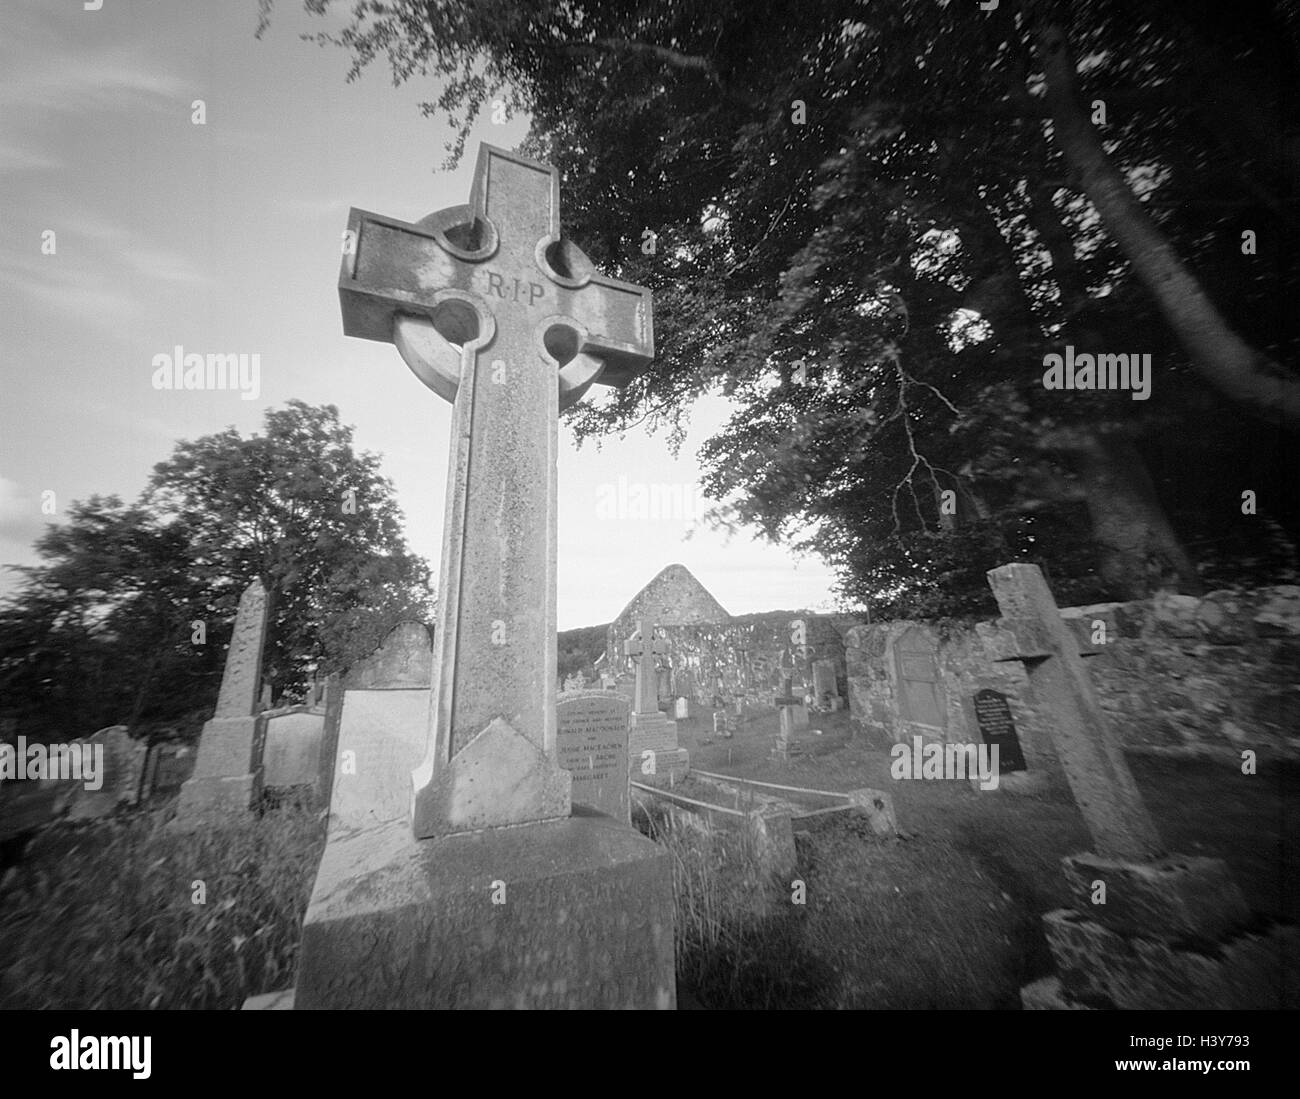 Great Britain, Scotland, Arisaig, cemetery, tombs, b/w, memorial, place rest, tombs, gravestones, crosses, tomb - Stock Image